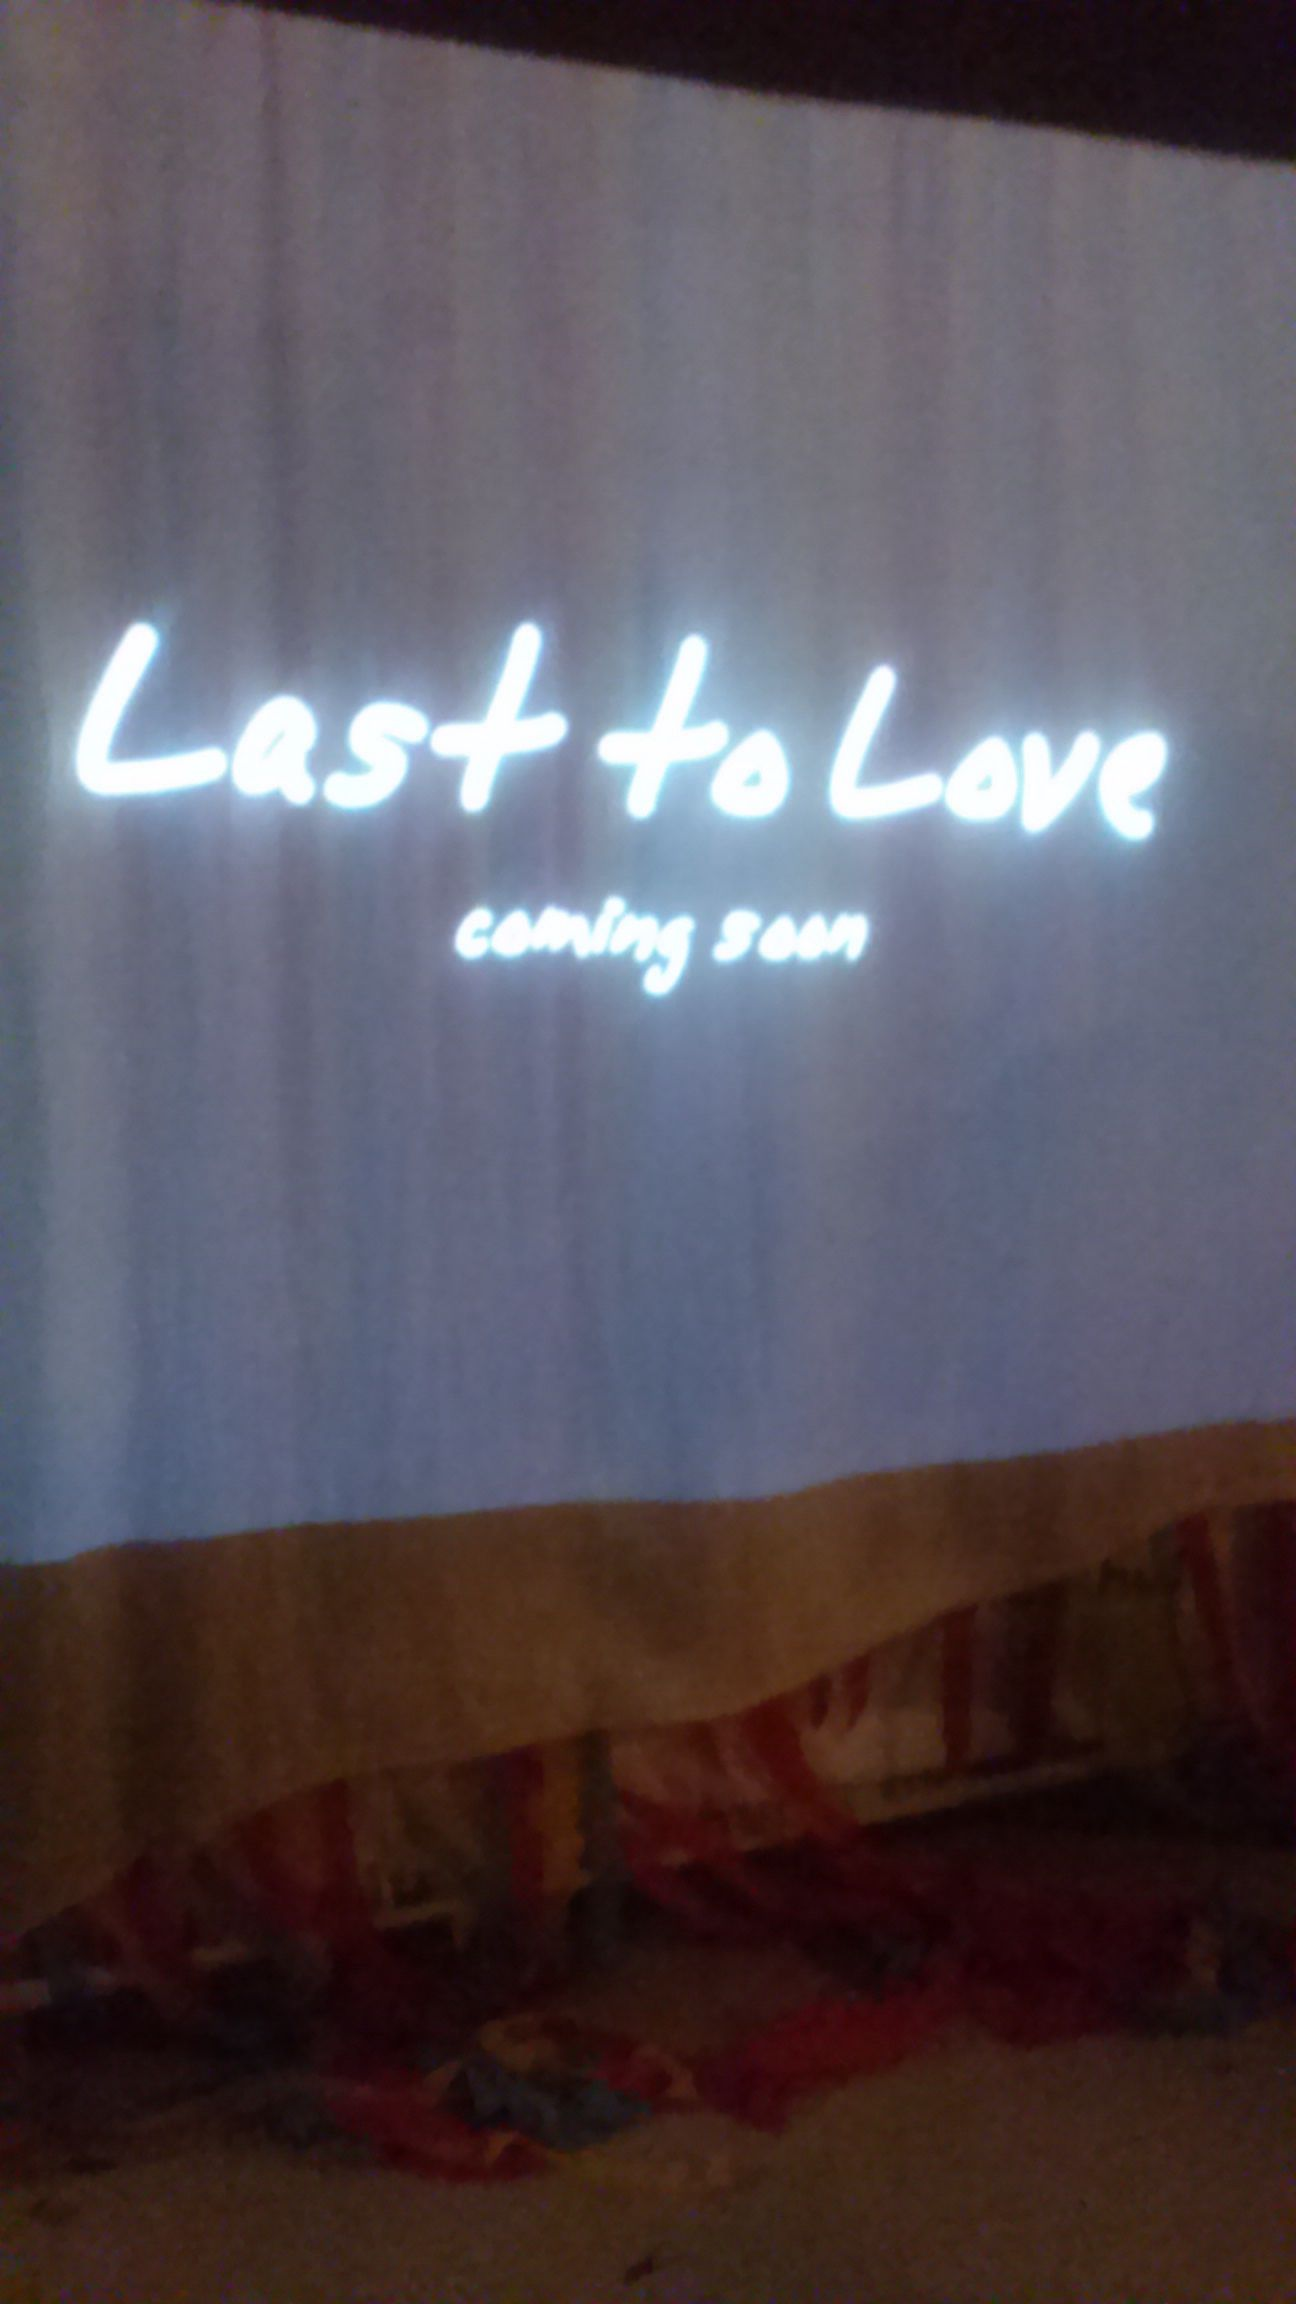 Coming Soon - LovestoHAVE